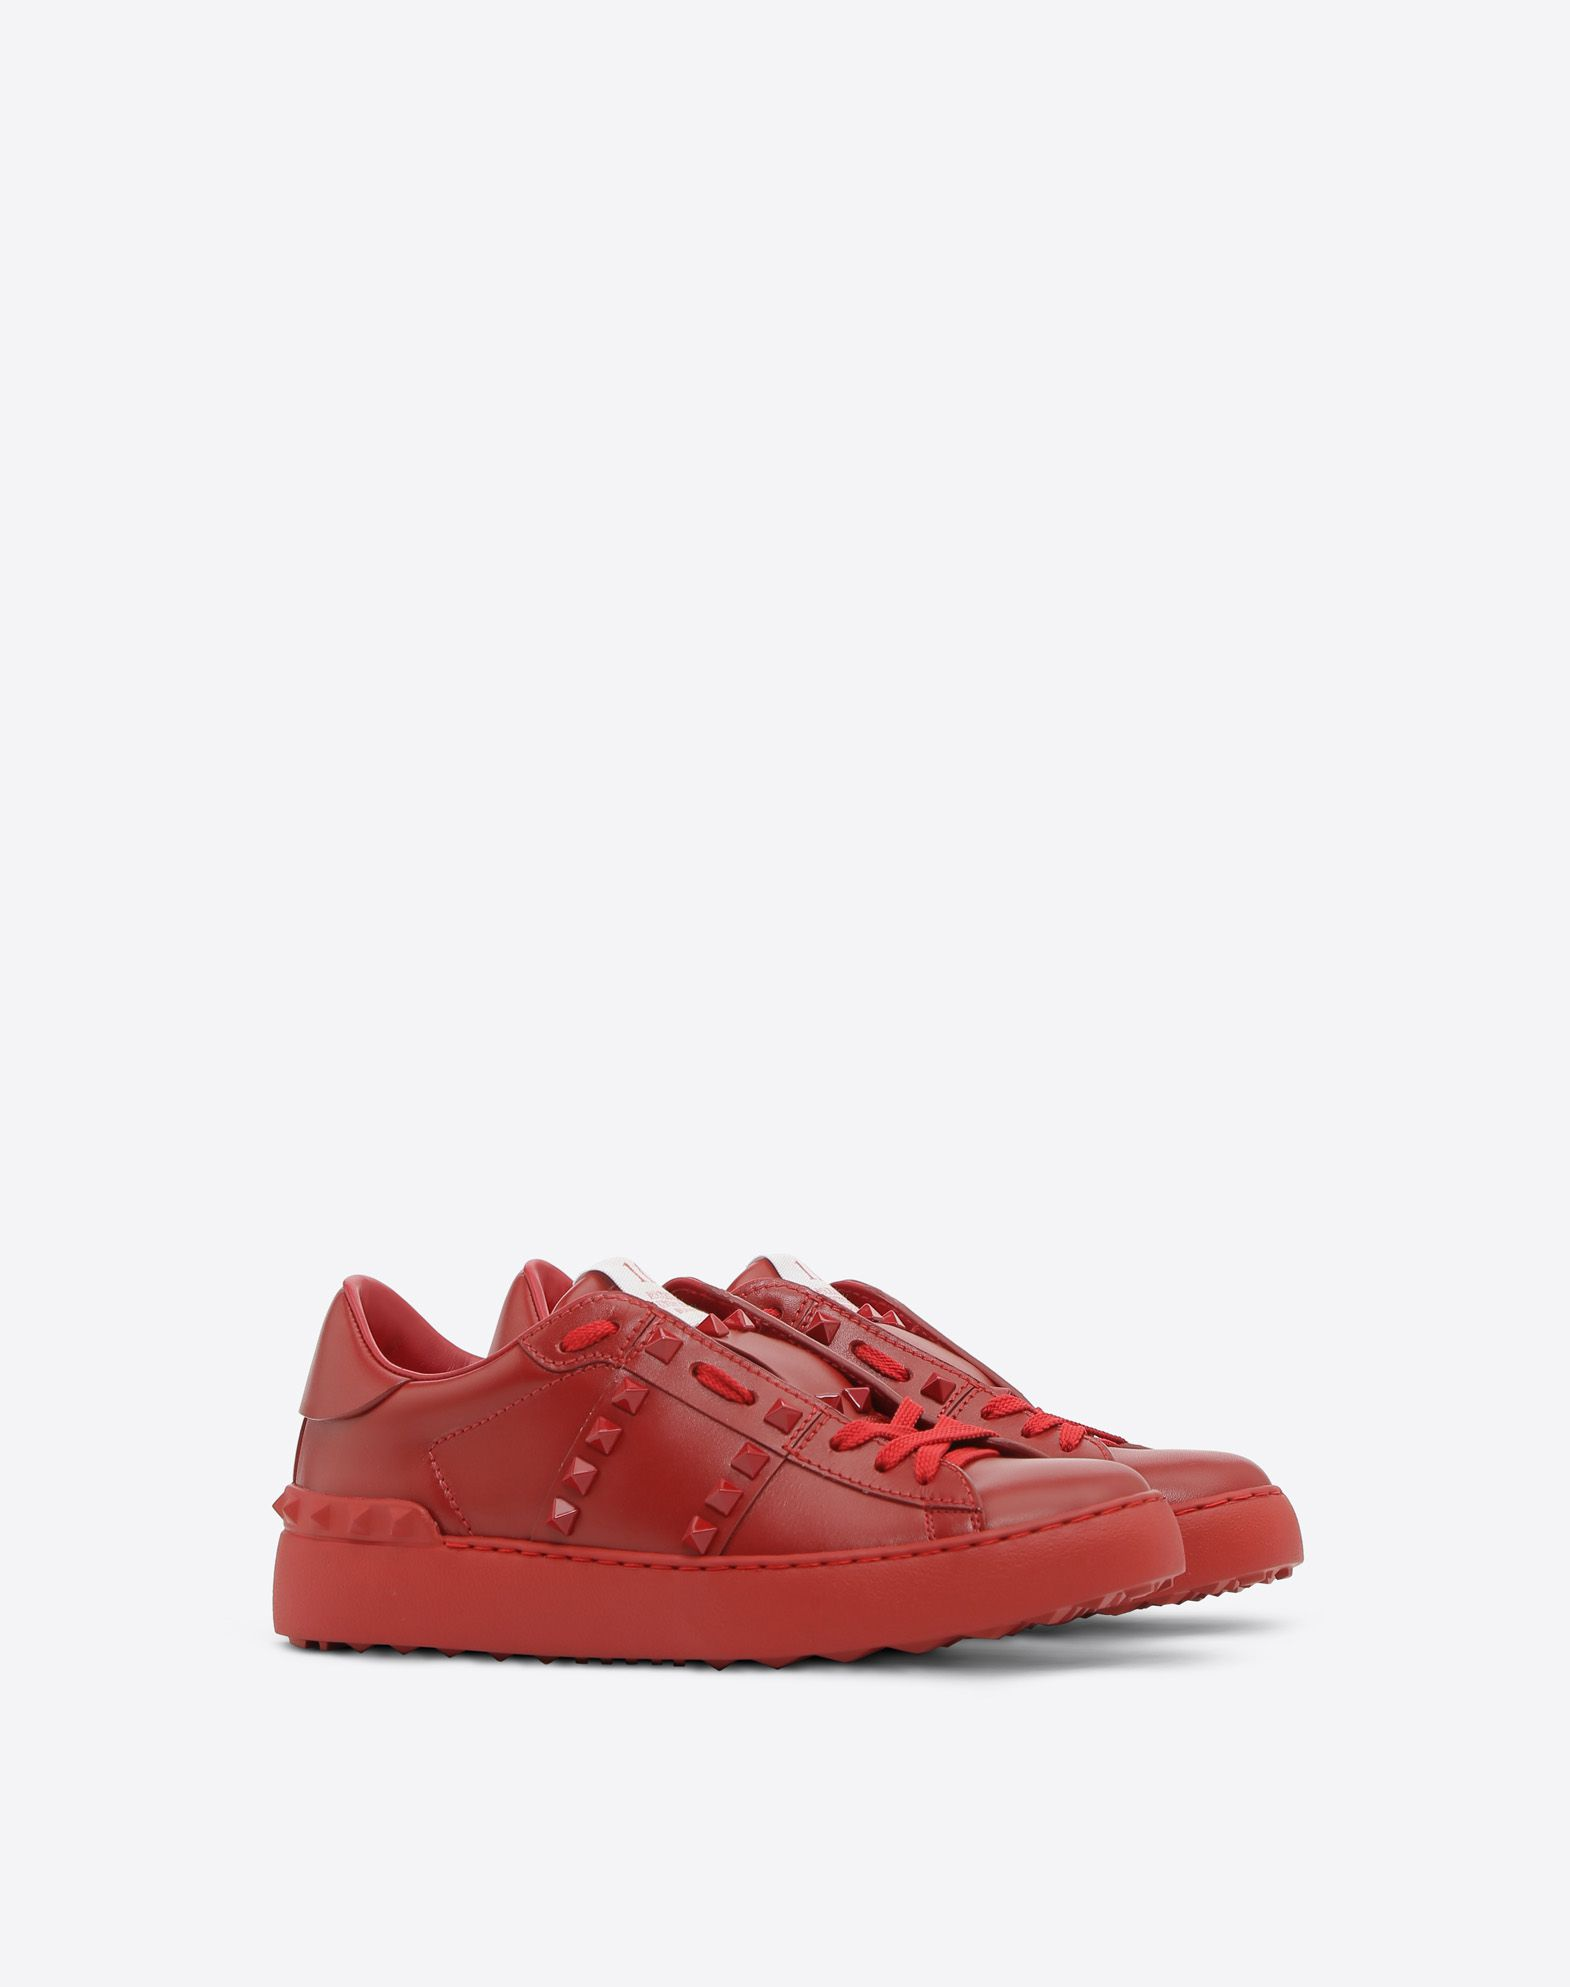 VALENTINO GARAVANI Rockstud Untitled Rosso Sneaker LOW-TOP SNEAKERS D r